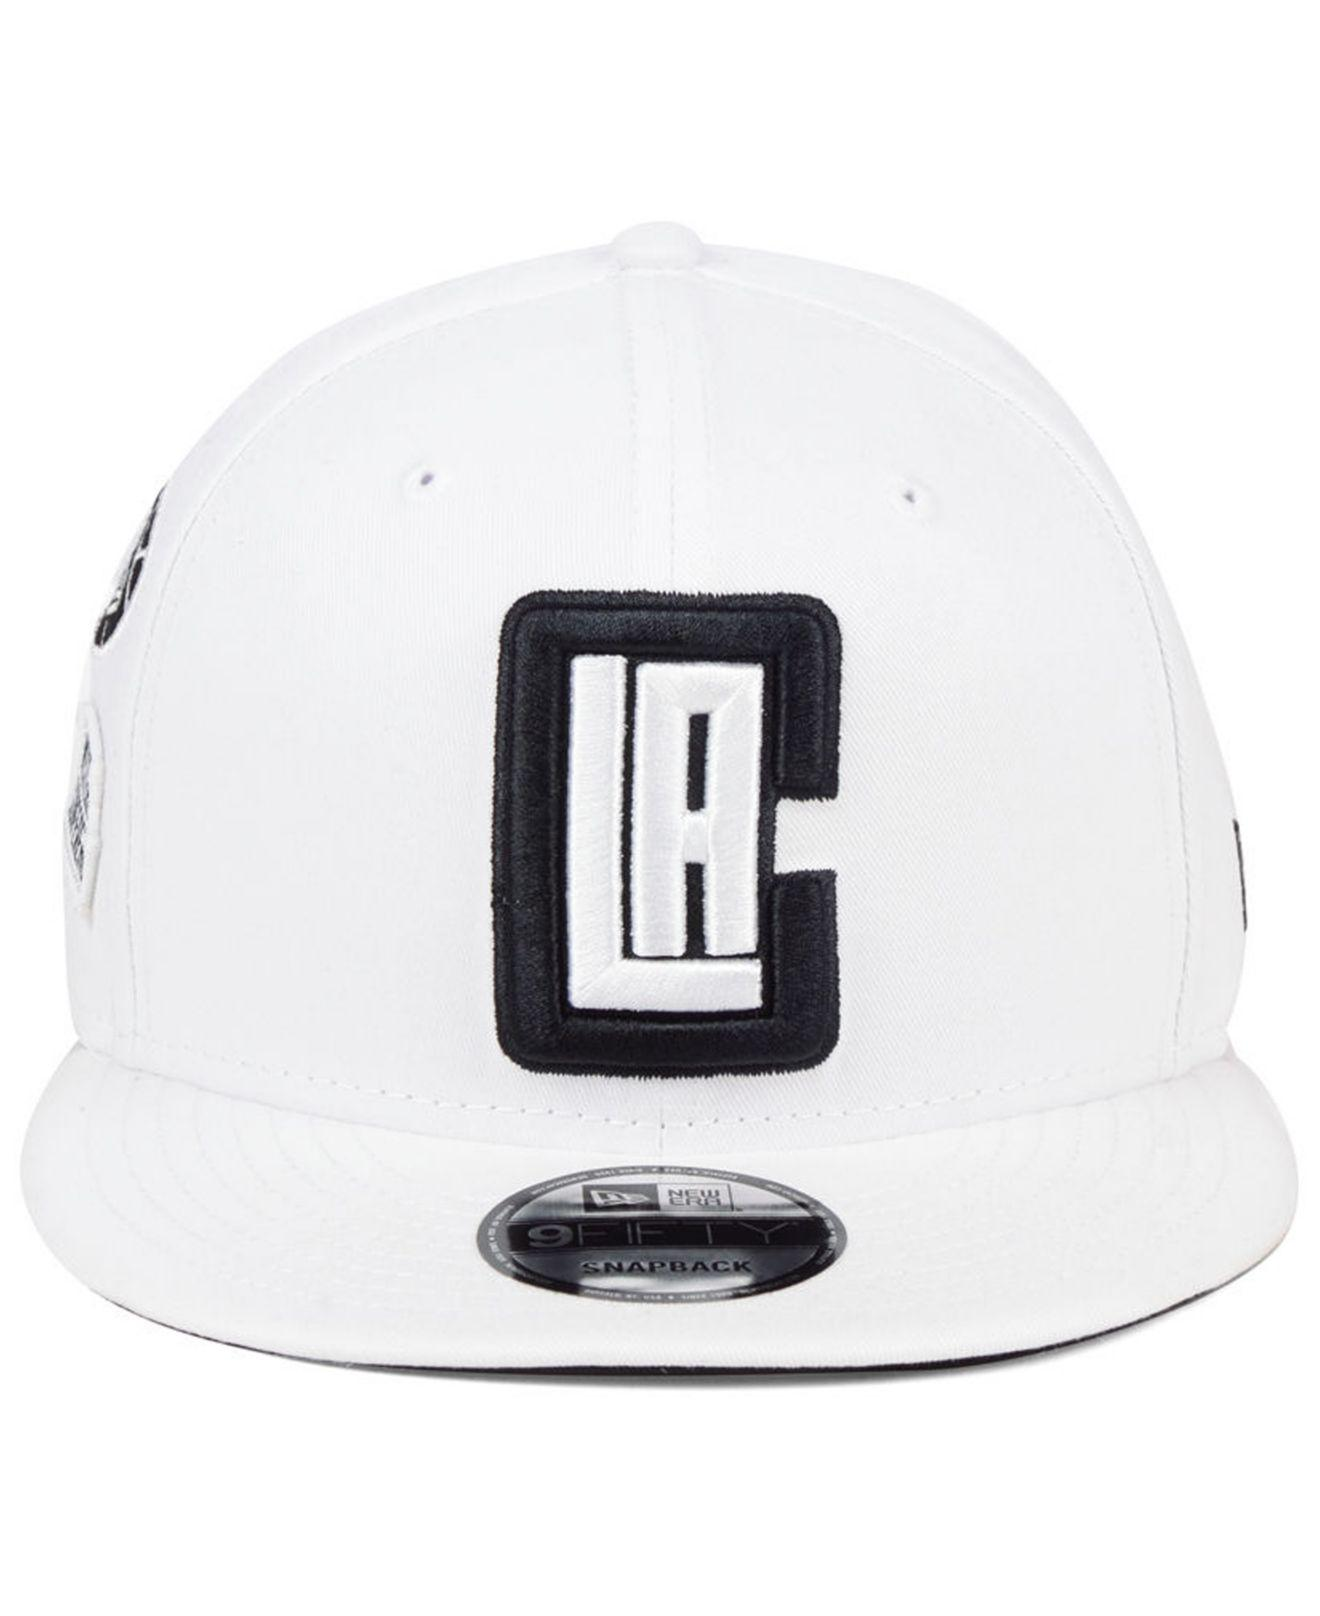 cheap for discount 224b4 794ef KTZ Los Angeles Clippers Night Sky 9fifty Snapback Cap in White for Men -  Lyst